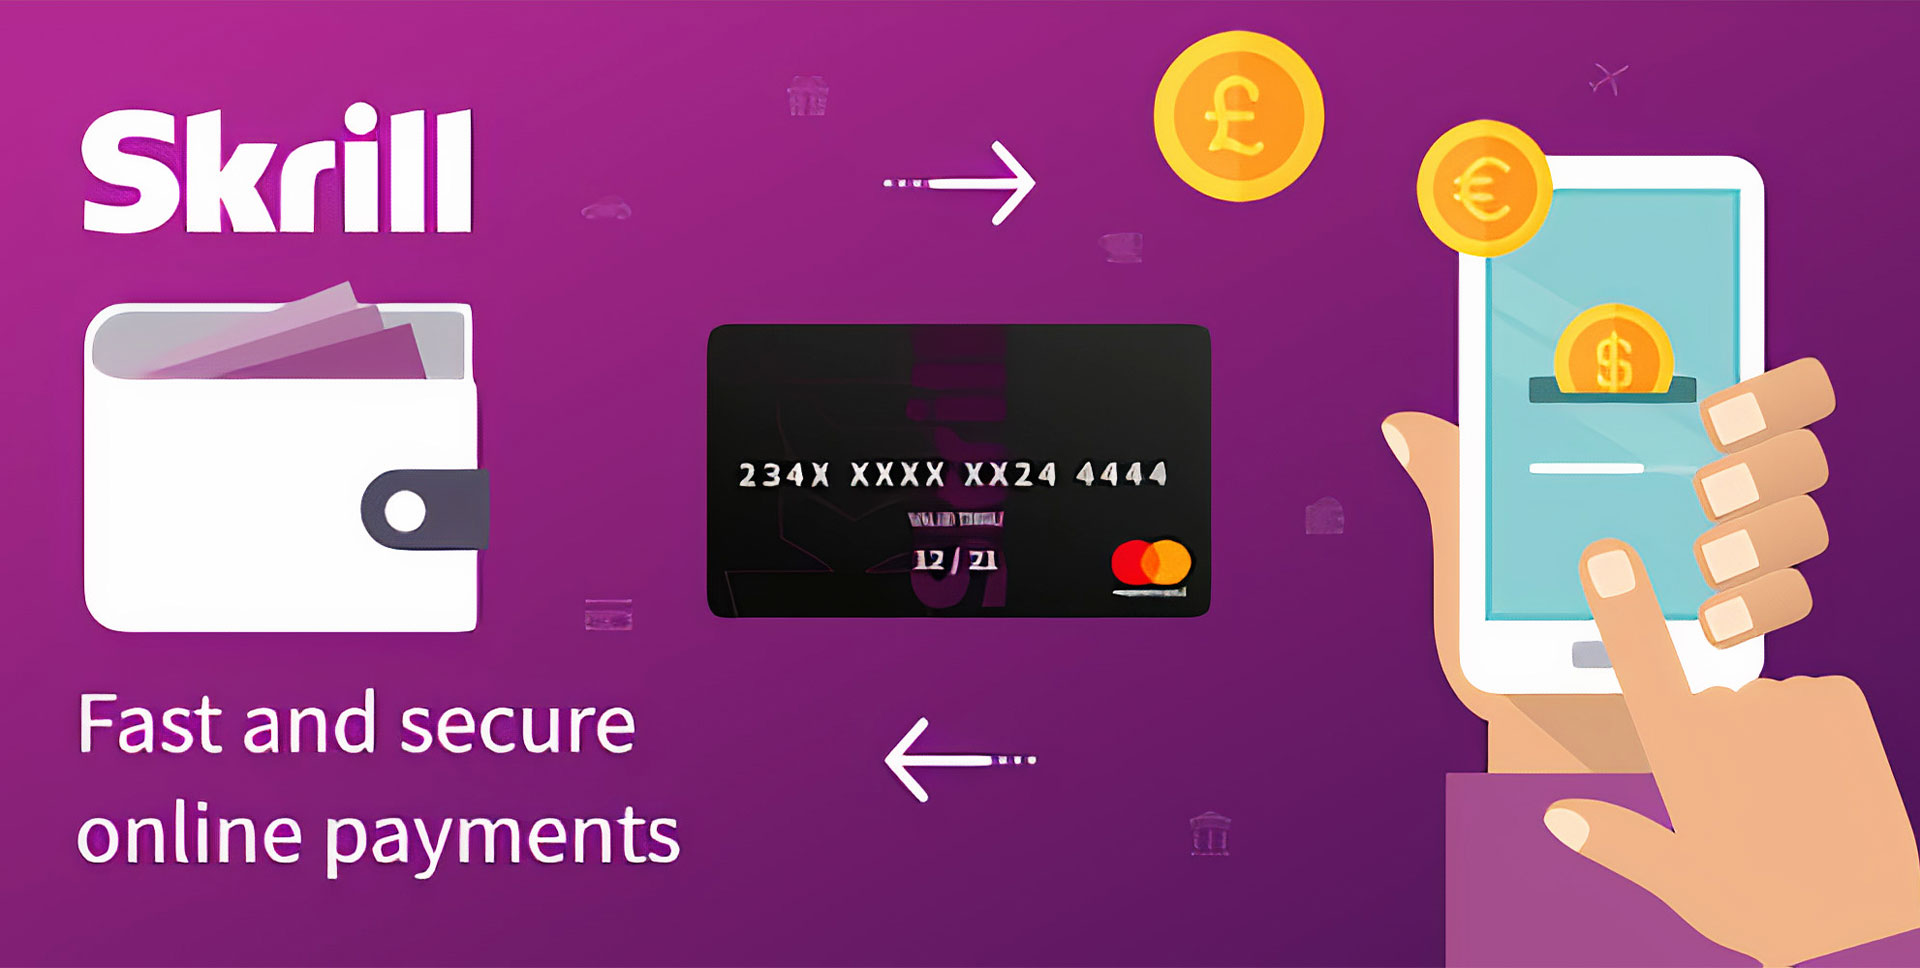 You can transfer money from other e-wallets or Indian banks and deposit via Skrill.